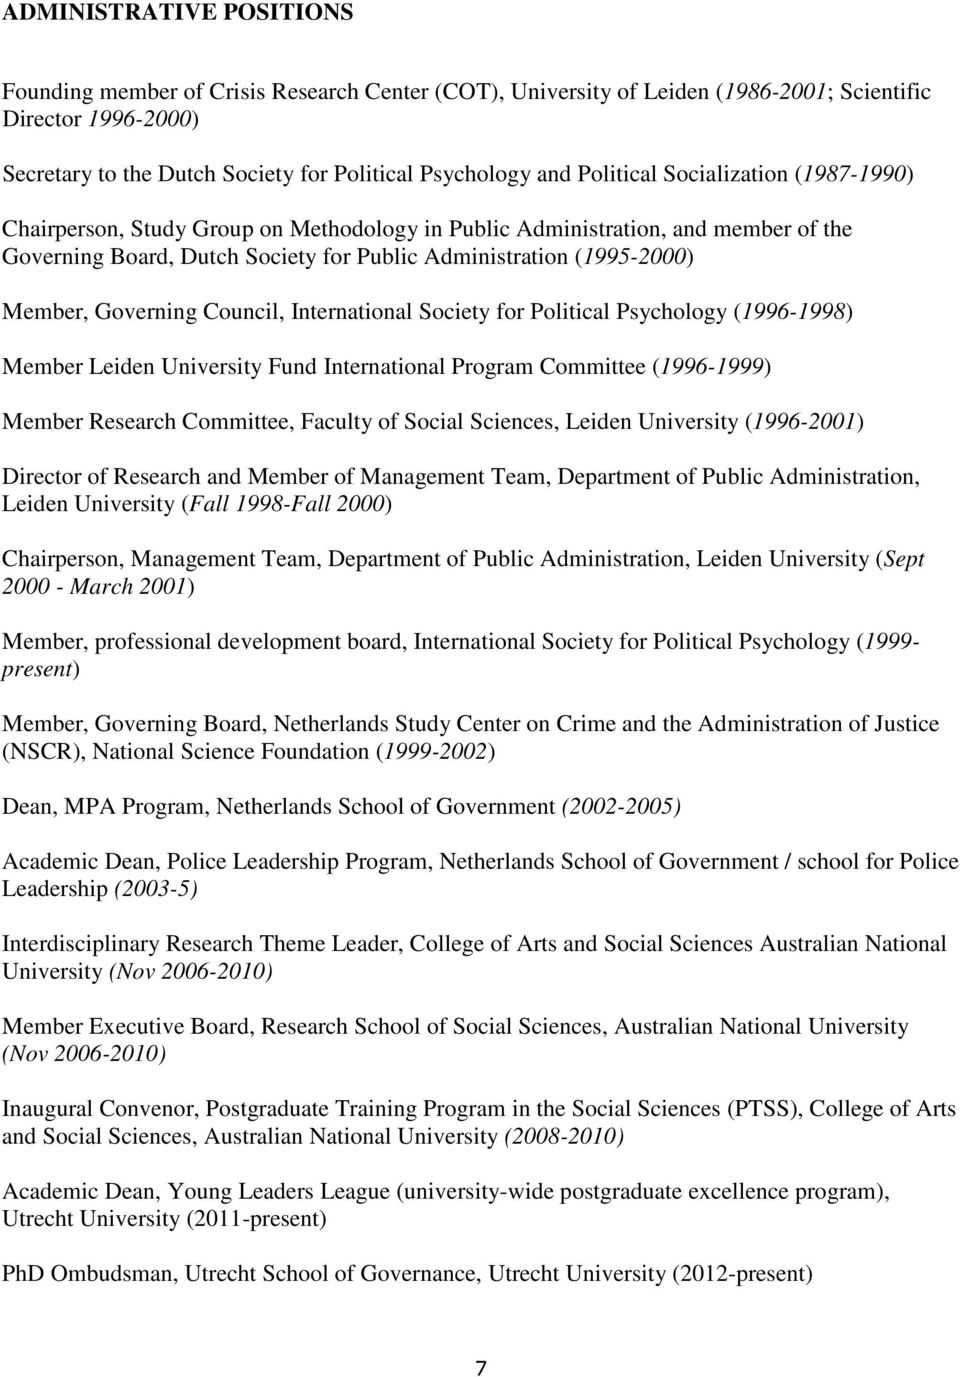 Governing Council, International Society for Political Psychology (1996-1998) Member Leiden University Fund International Program Committee (1996-1999) Member Research Committee, Faculty of Social